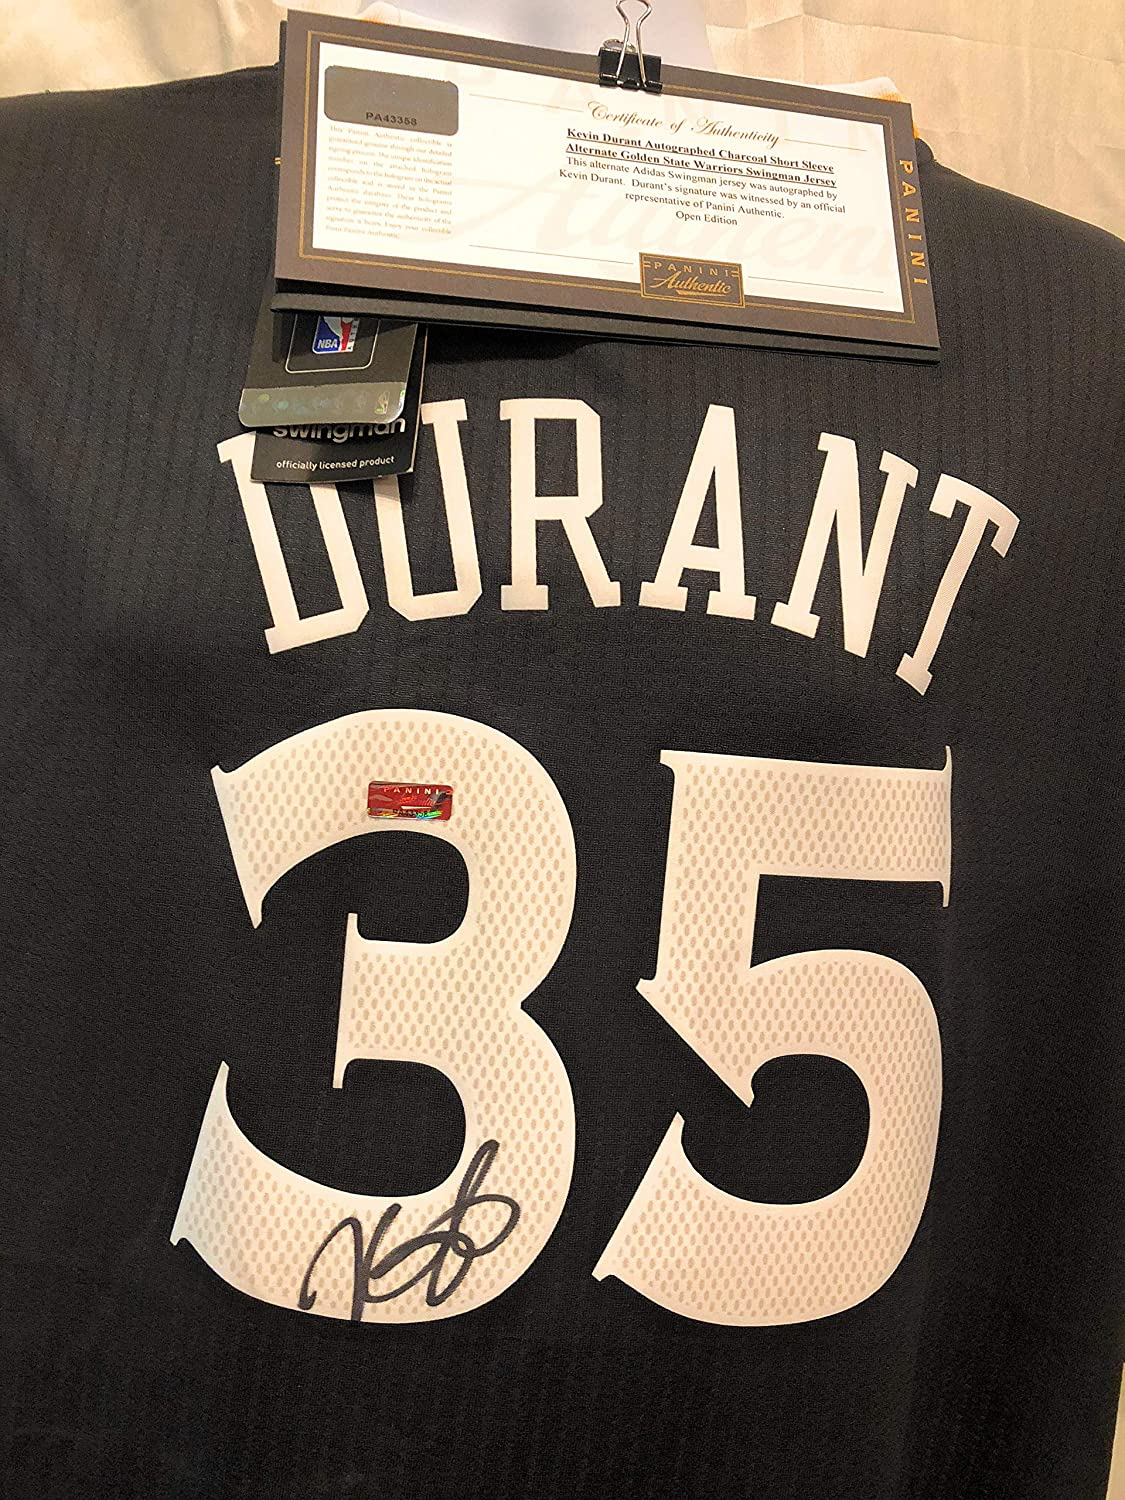 dd0ac38d57c Kevin Durant Golden State Warriors Signed Autograph Grey Sleeved Swingman  Jersey Panini Authentic Certified at Amazon's Sports Collectibles Store